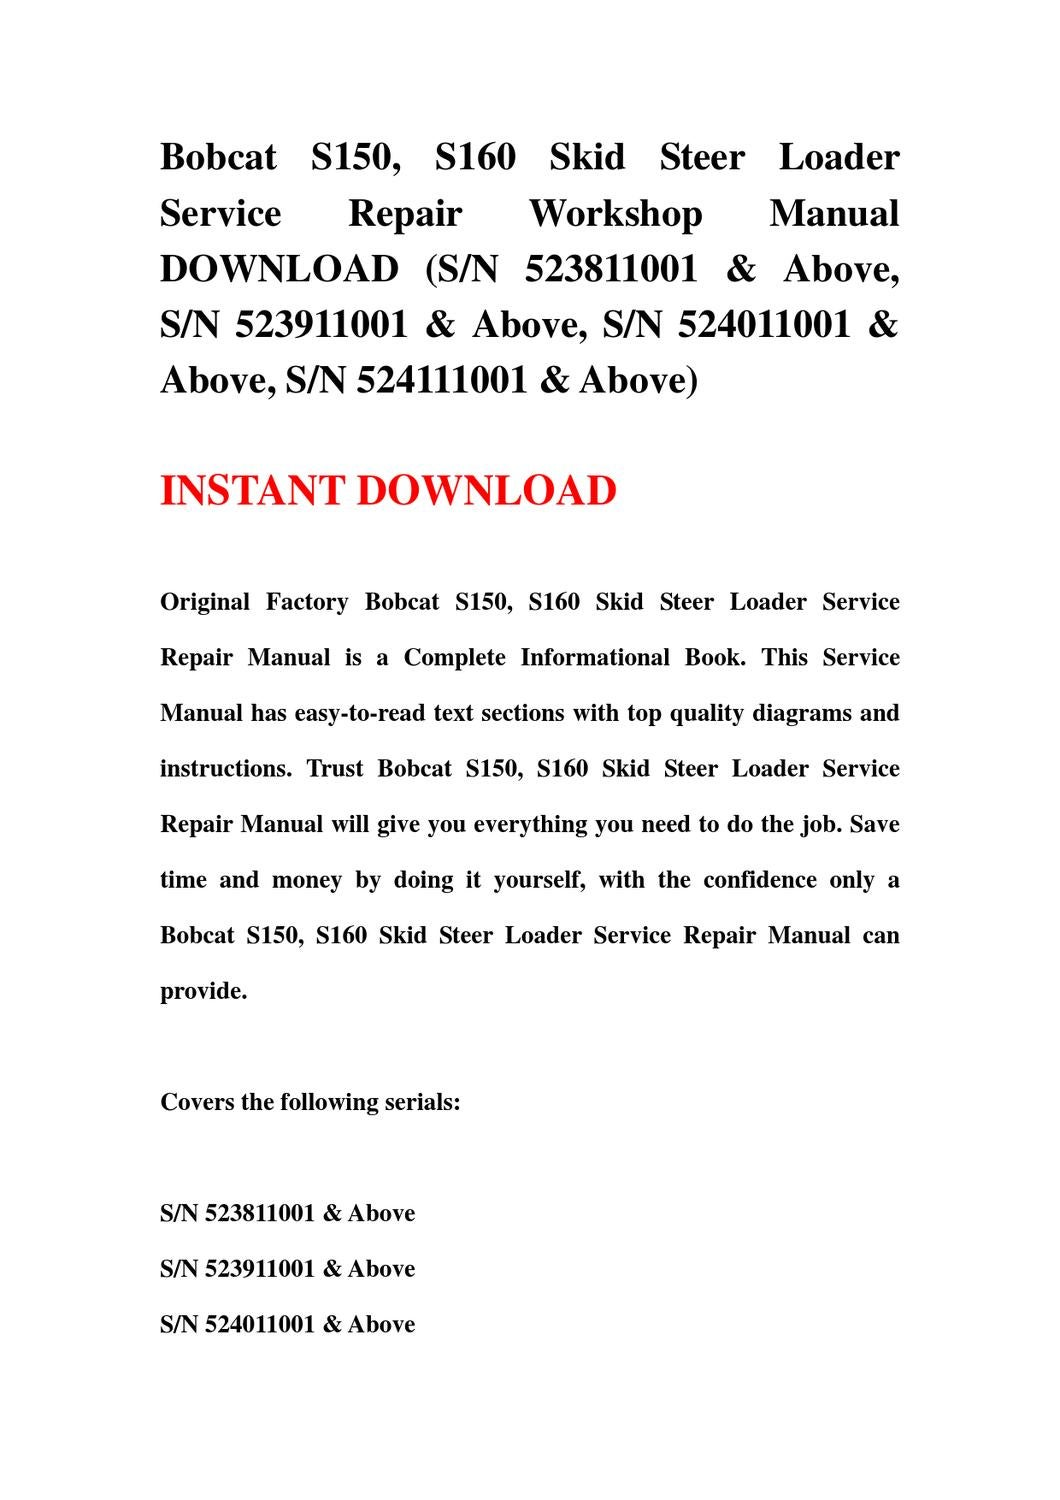 hight resolution of bobcat s150 s160 skid steer loader service repair workshop manual download sn 523811001 above s by qin mei issuu